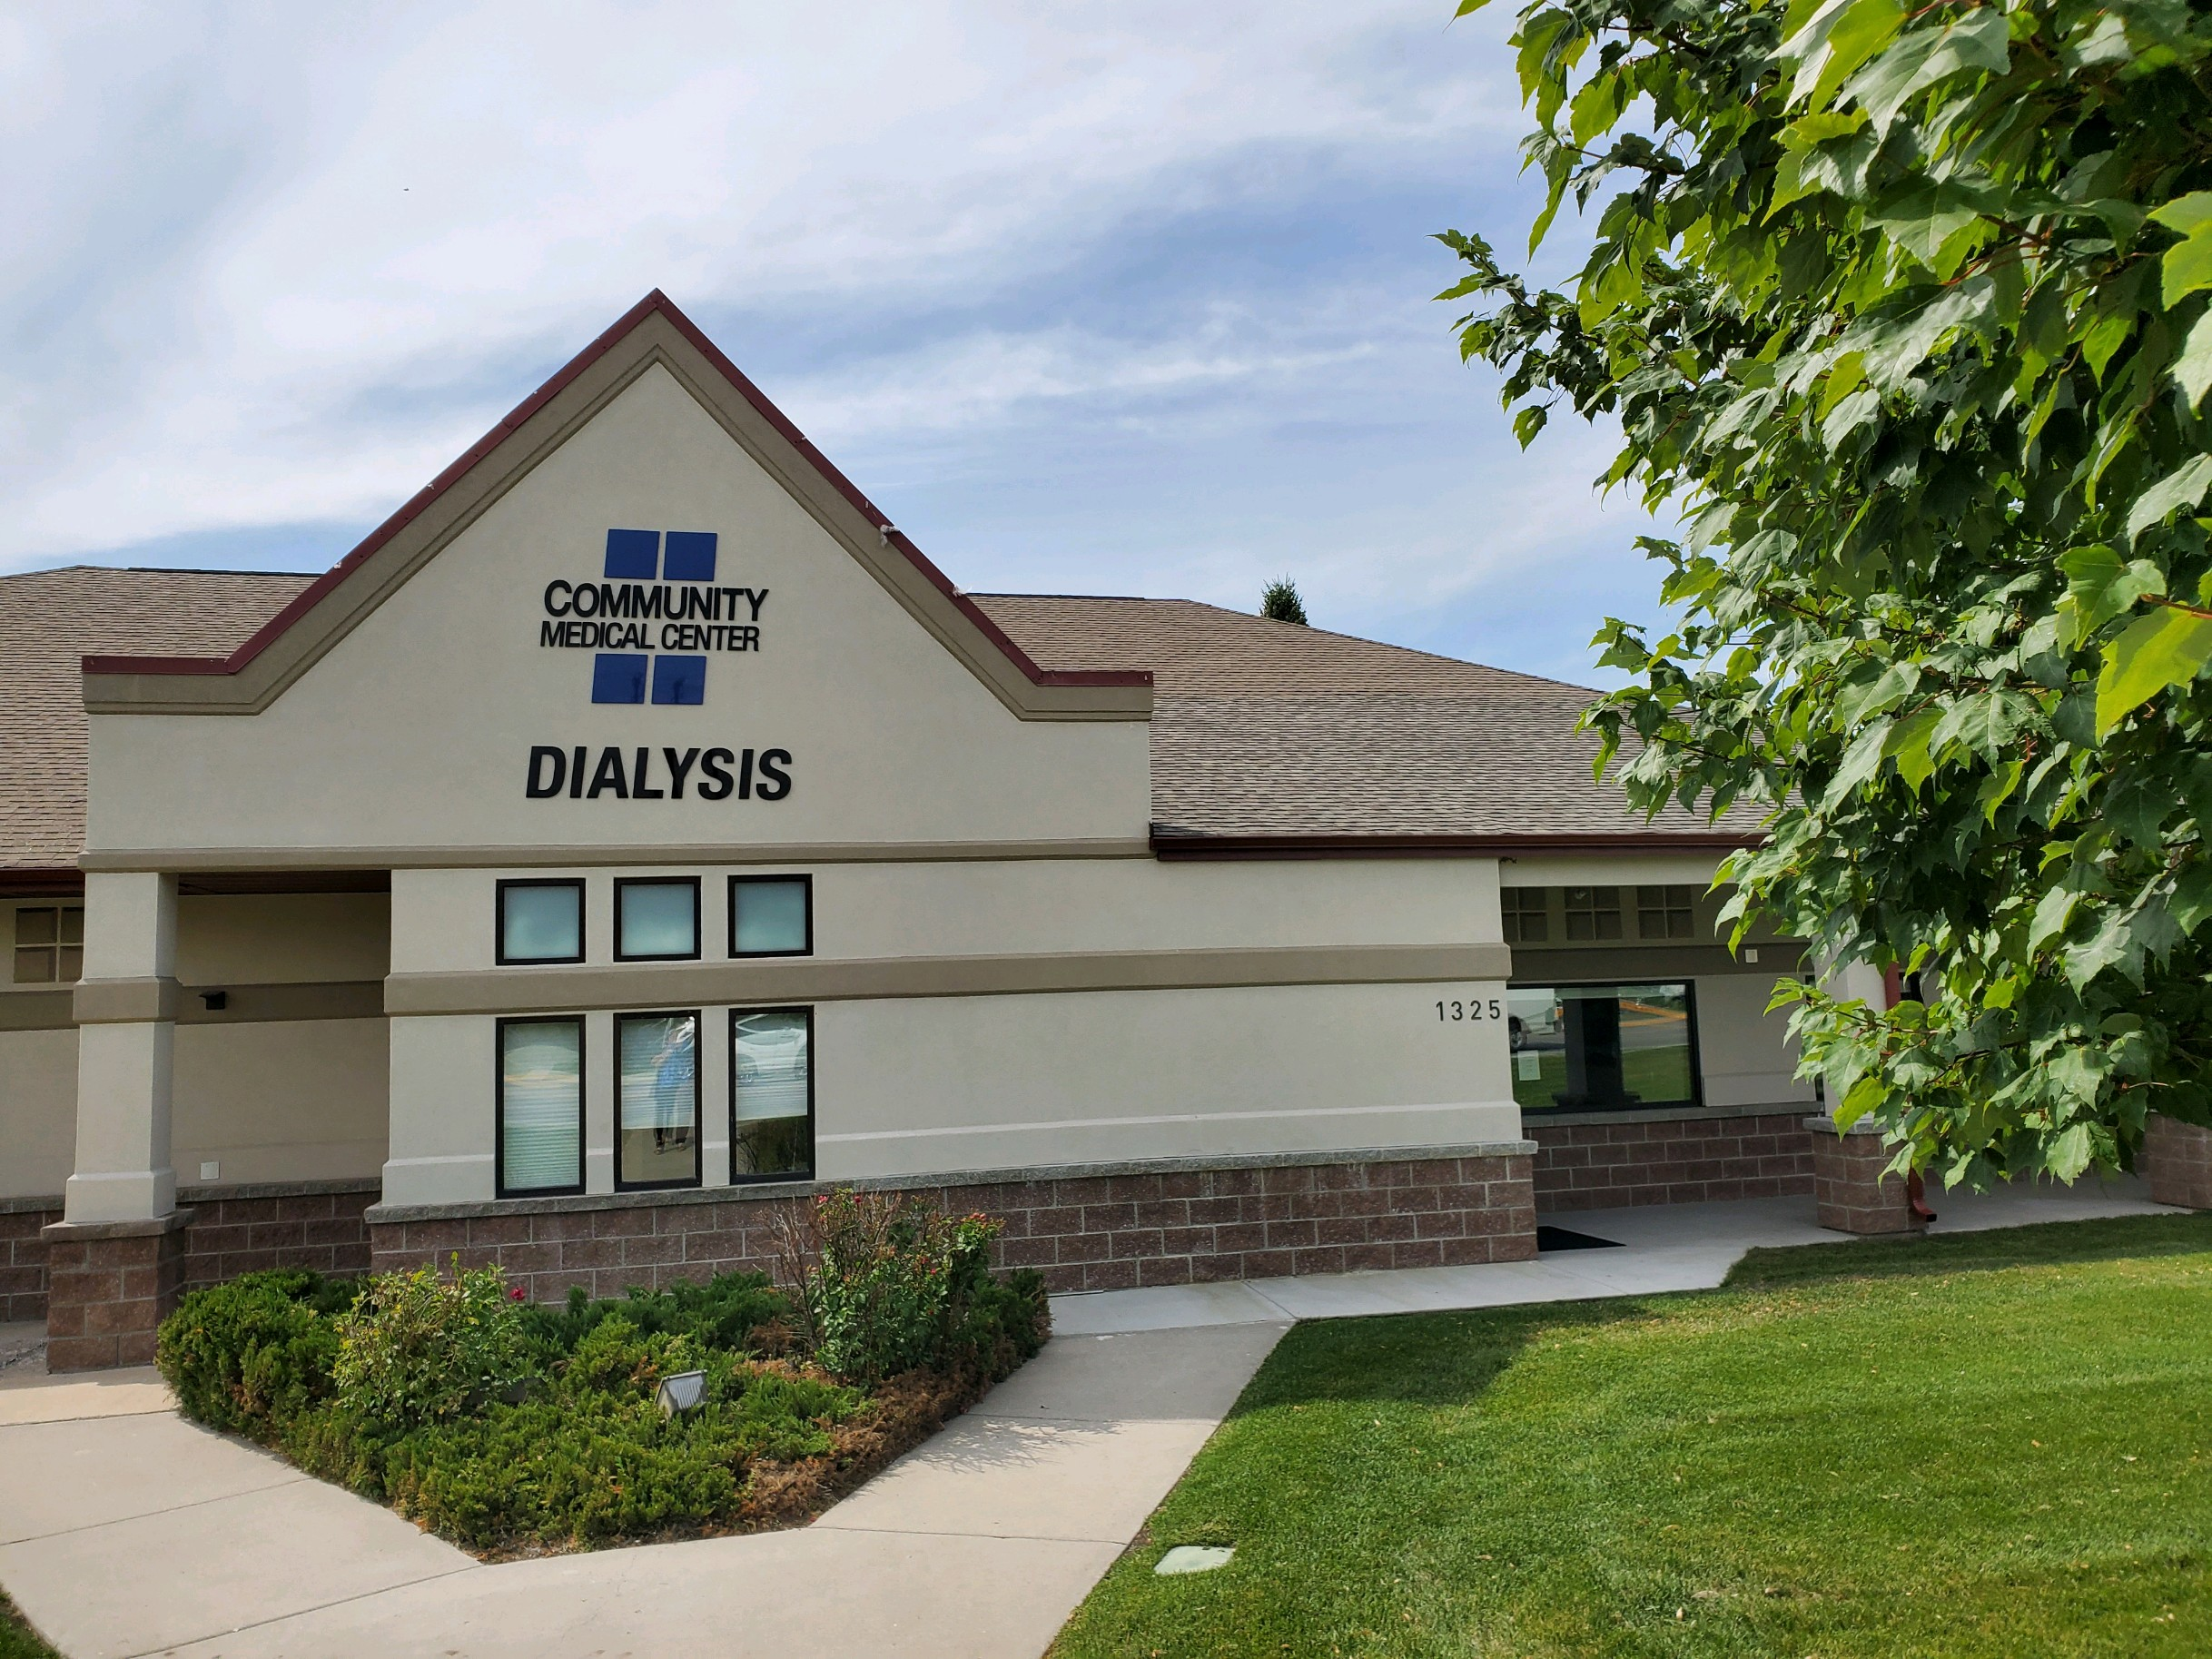 Community Medical Center Dialysis Front 2